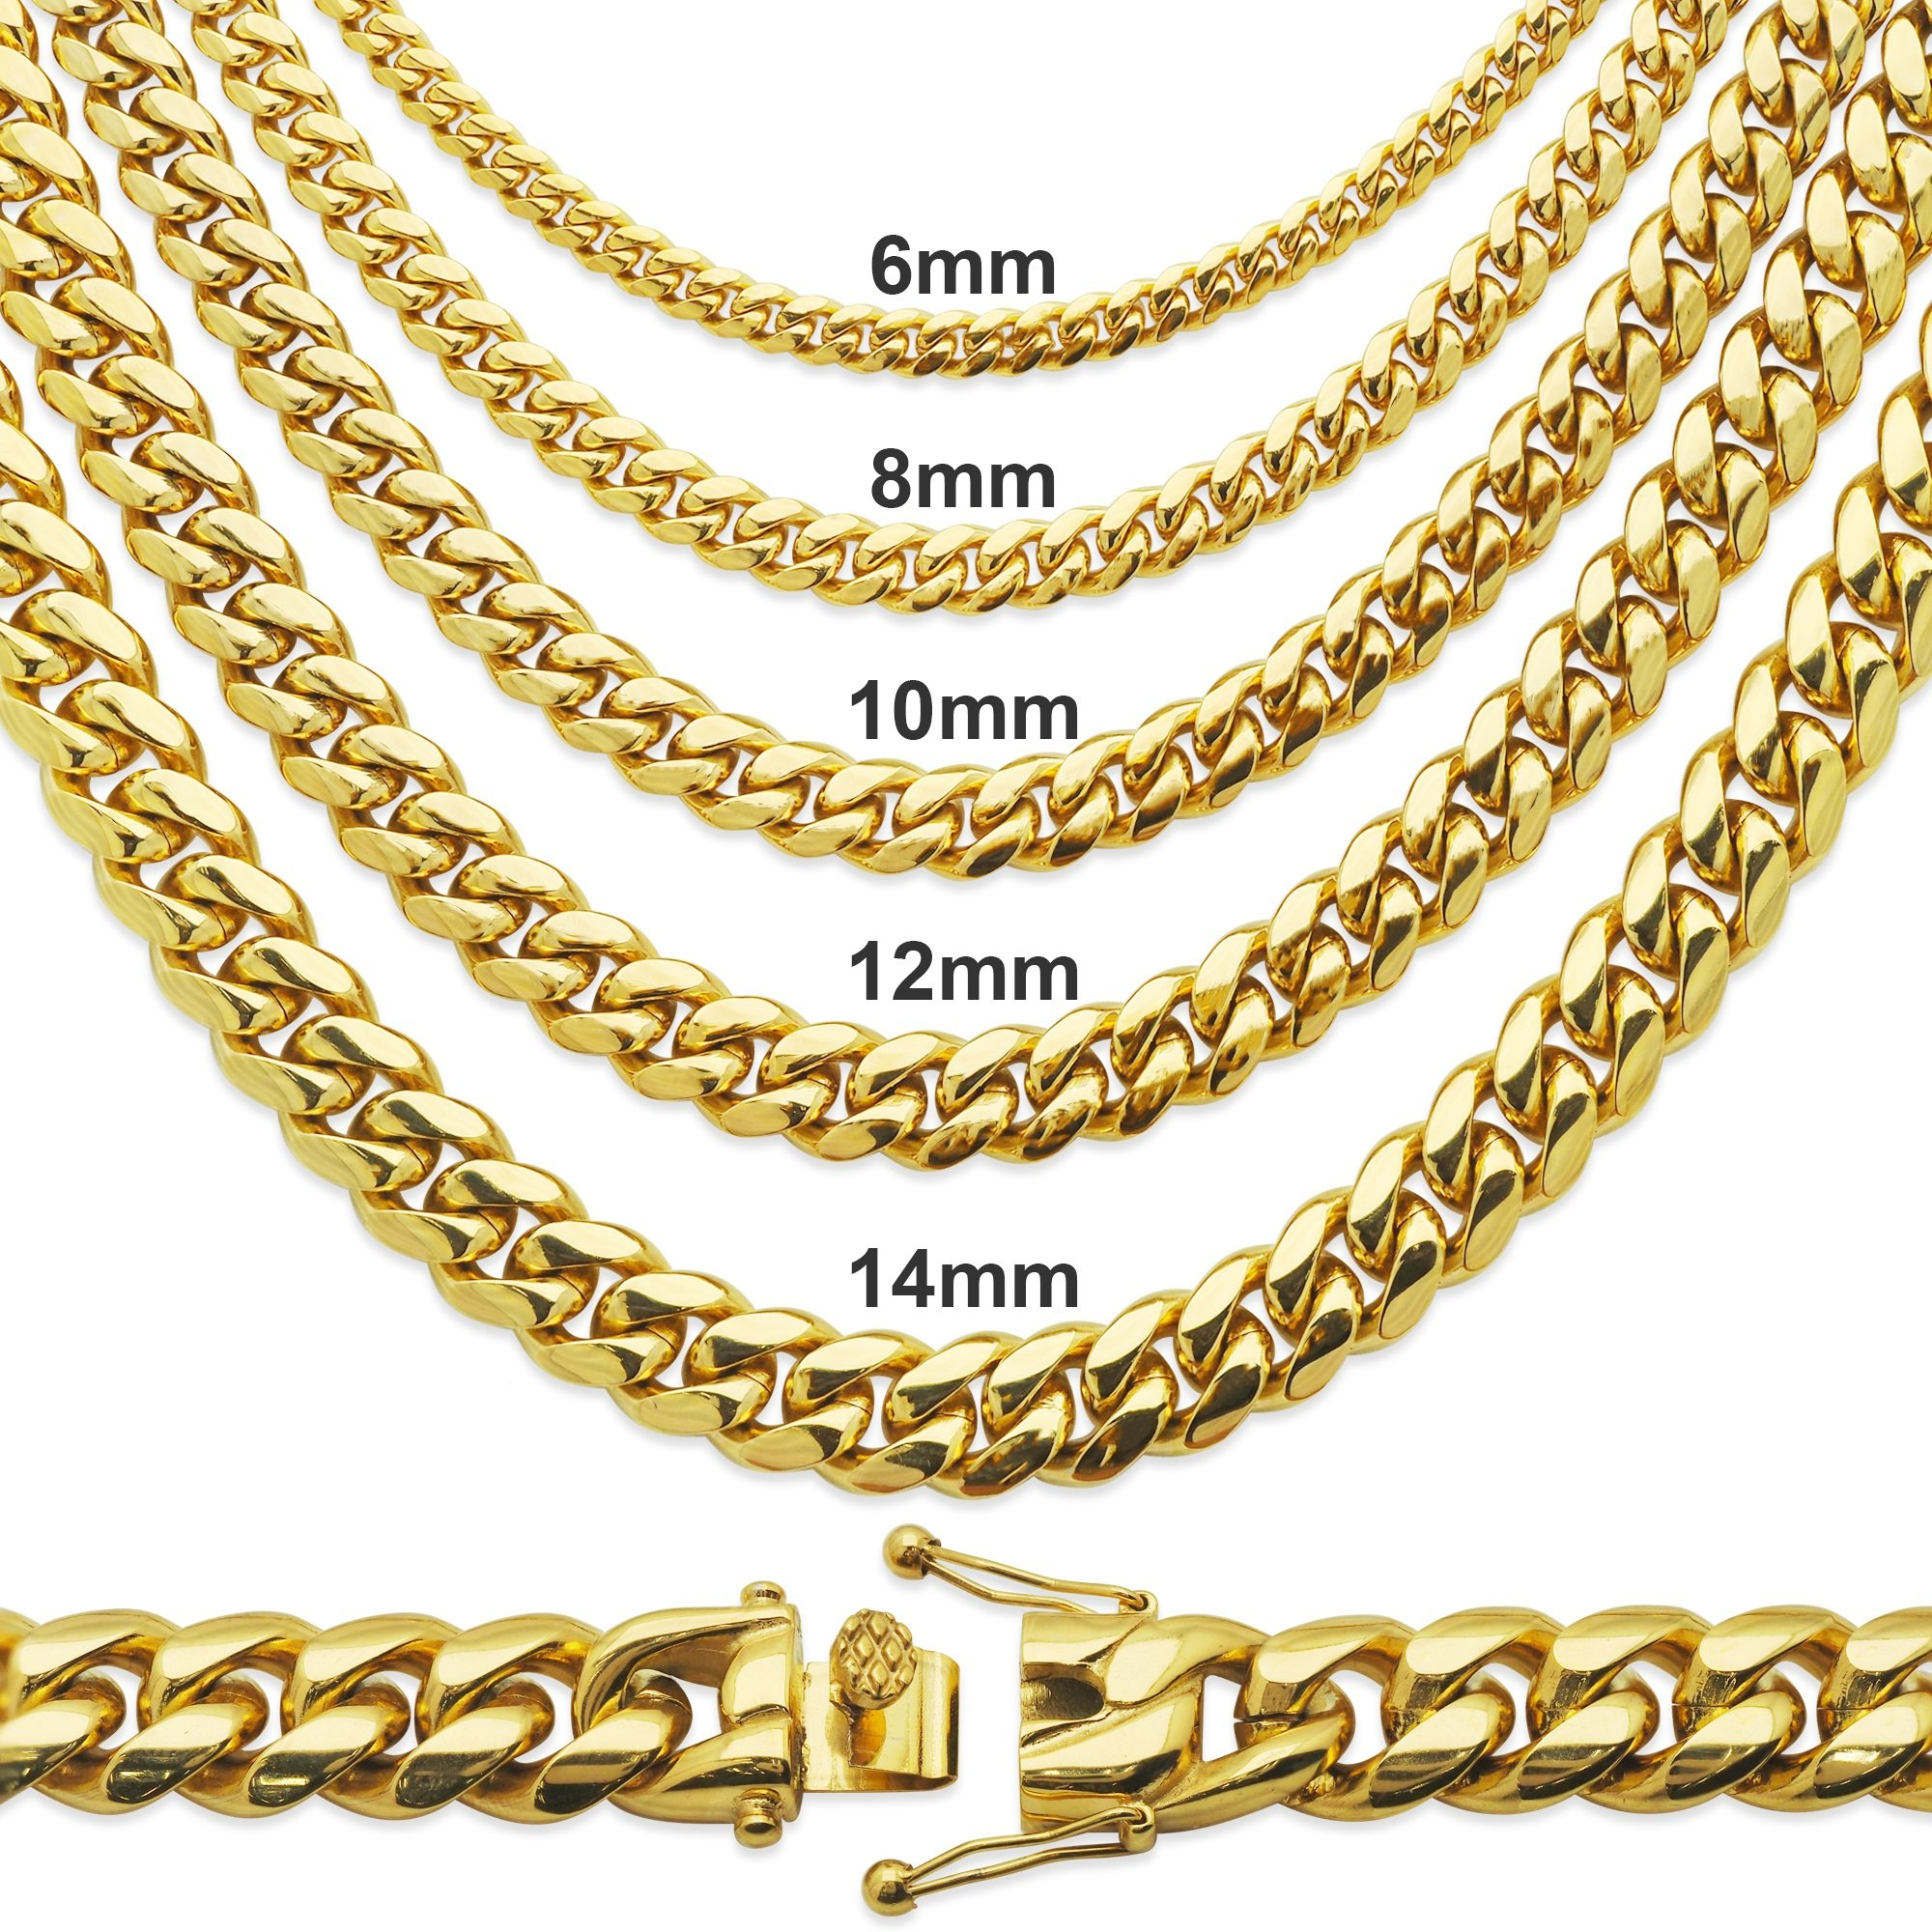 Premium 14KT Gold Plated Stainless Steel Heavy Solid Miami Cuban Link Chain. Secure Box Lock. 30'' Necklace or 8.5'', 9'' Bracelet